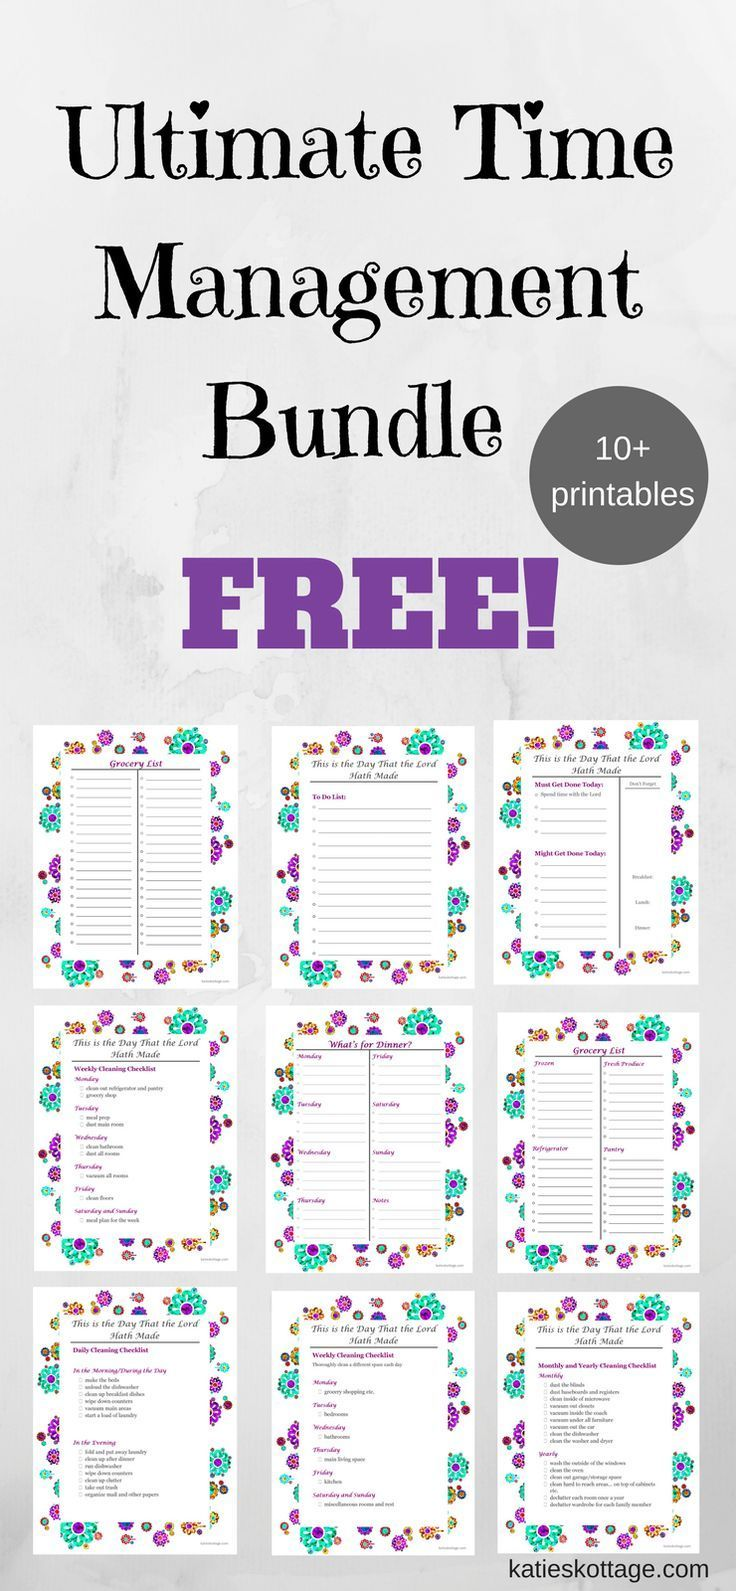 Get Your Ebook and Other Free Printables Time management